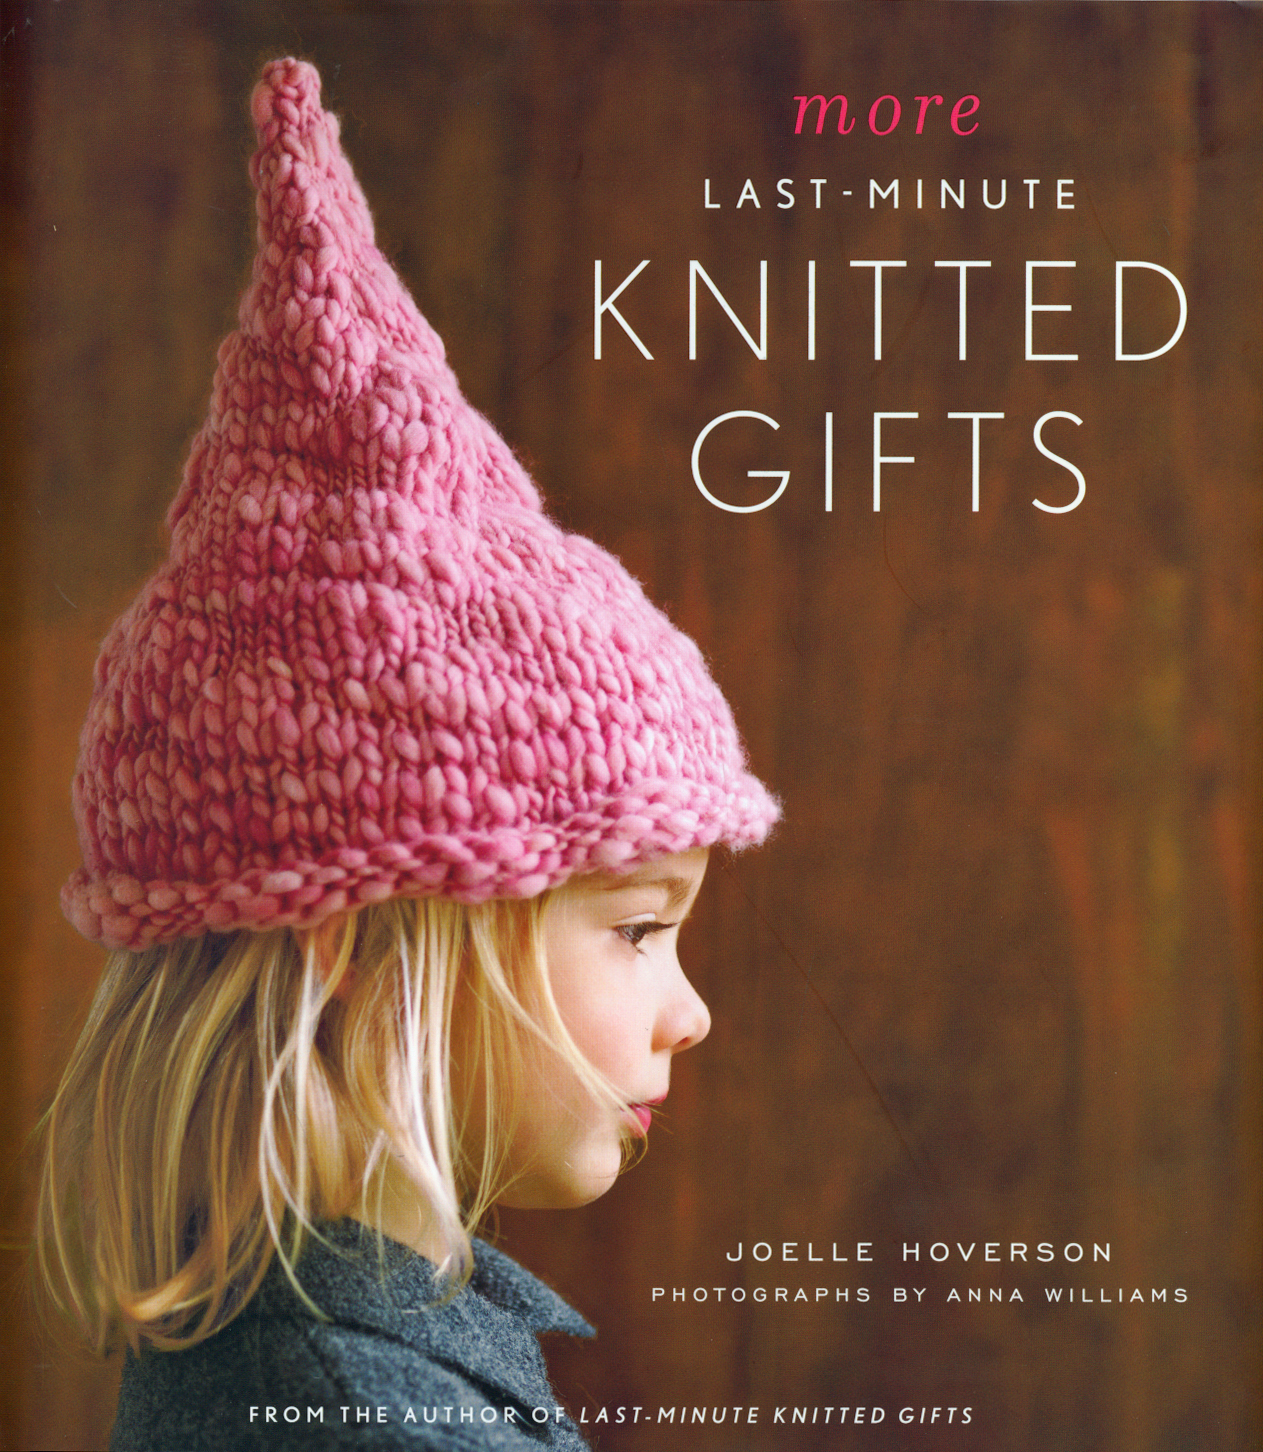 Knitting Gifts : WEBS Yarn Store Blog ? More Last-Minute Knitted Gifts Review